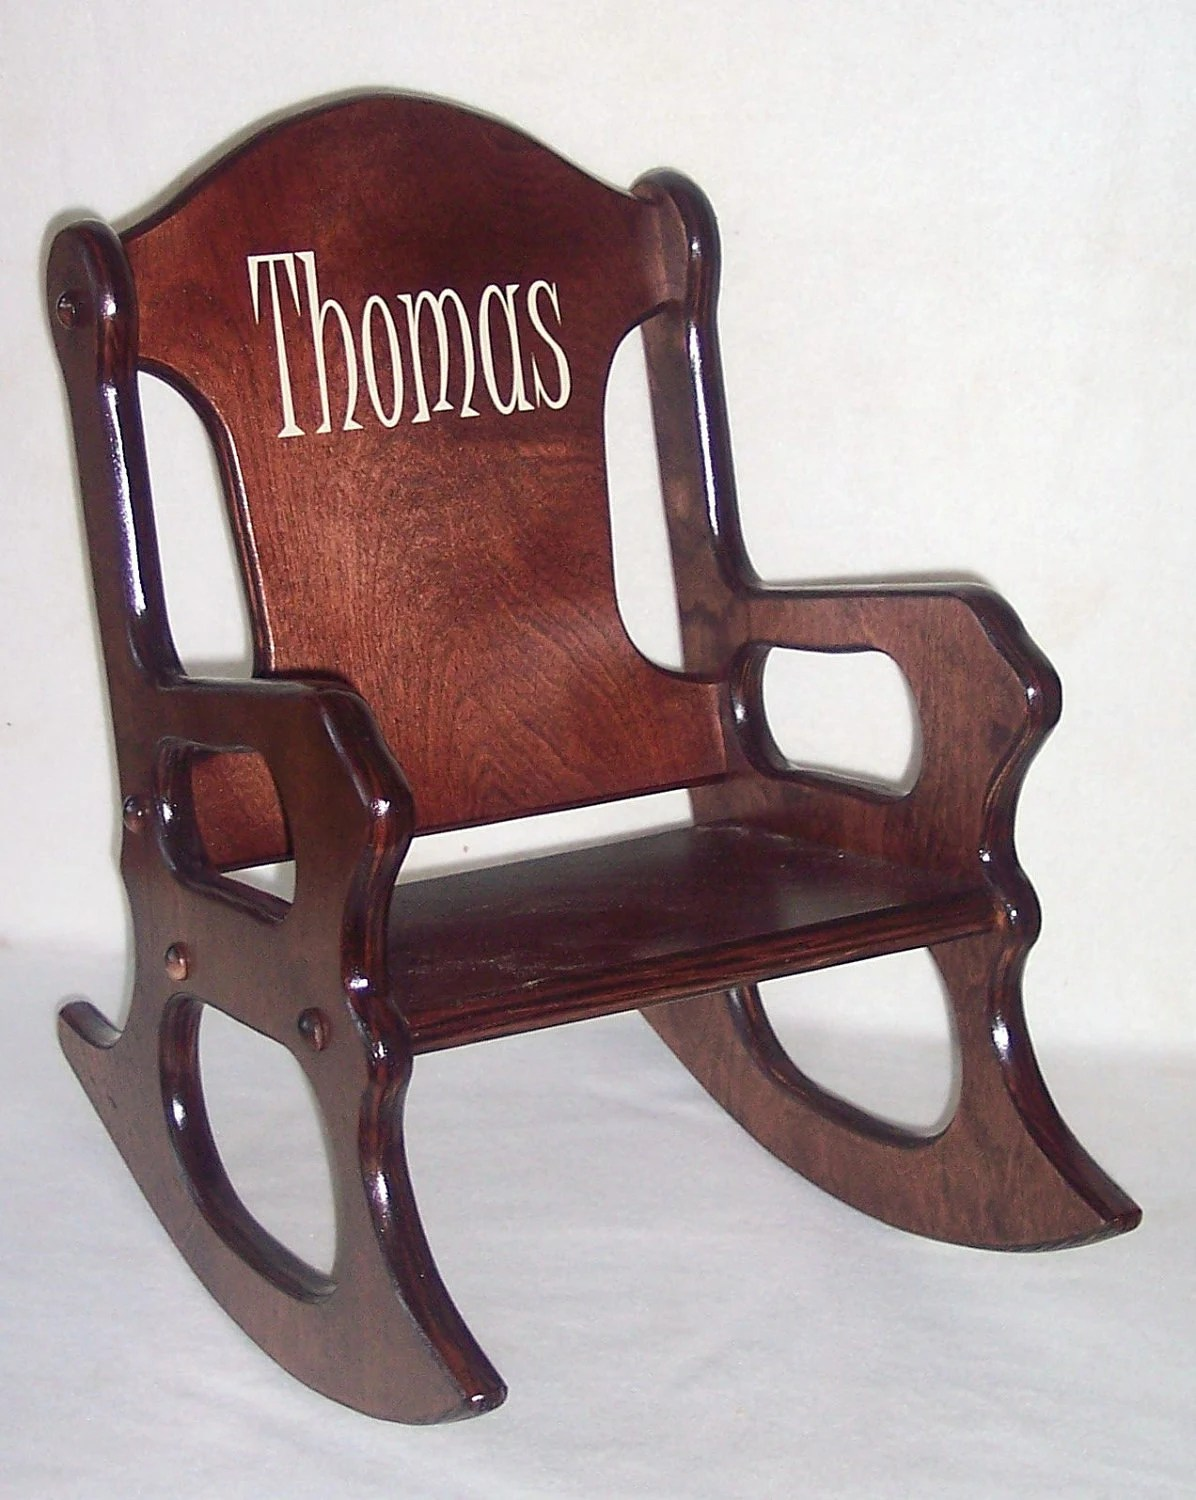 Toddler Rocker Chair Wooden Kids Rocking Chair Personalized Cherry Finish